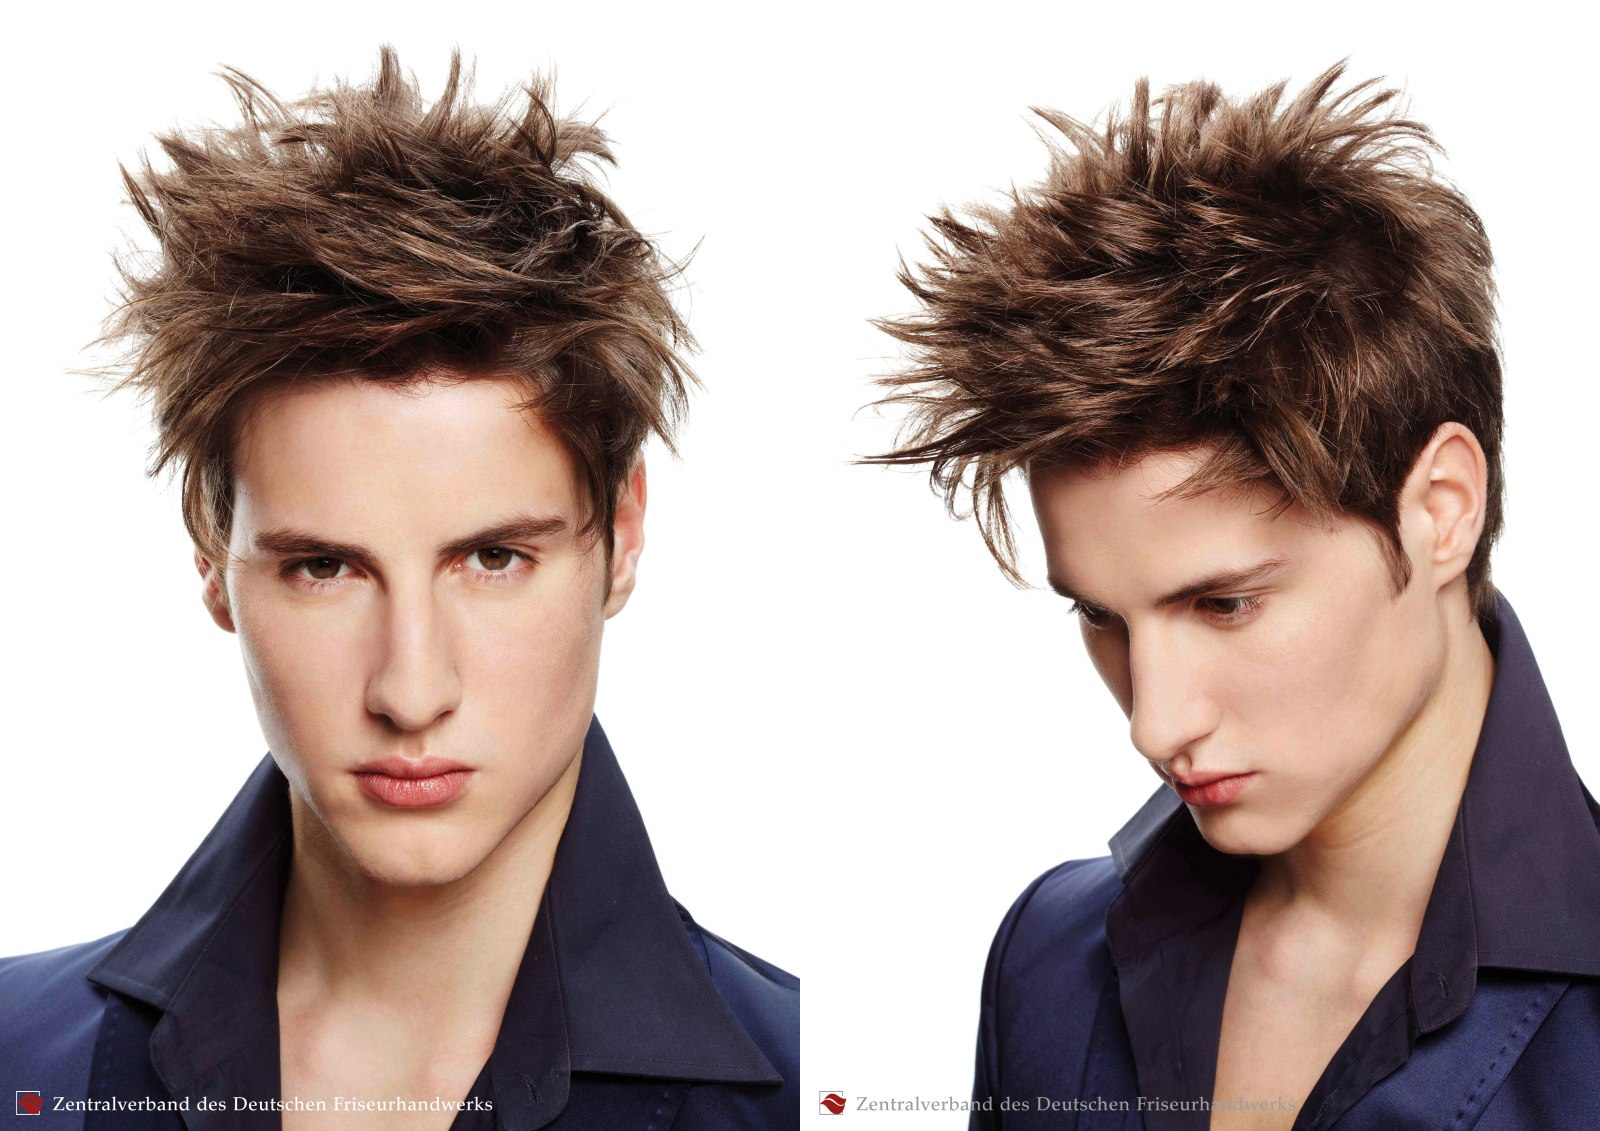 Spiked Hairstyle And Criss Cross Hair Styling For Men